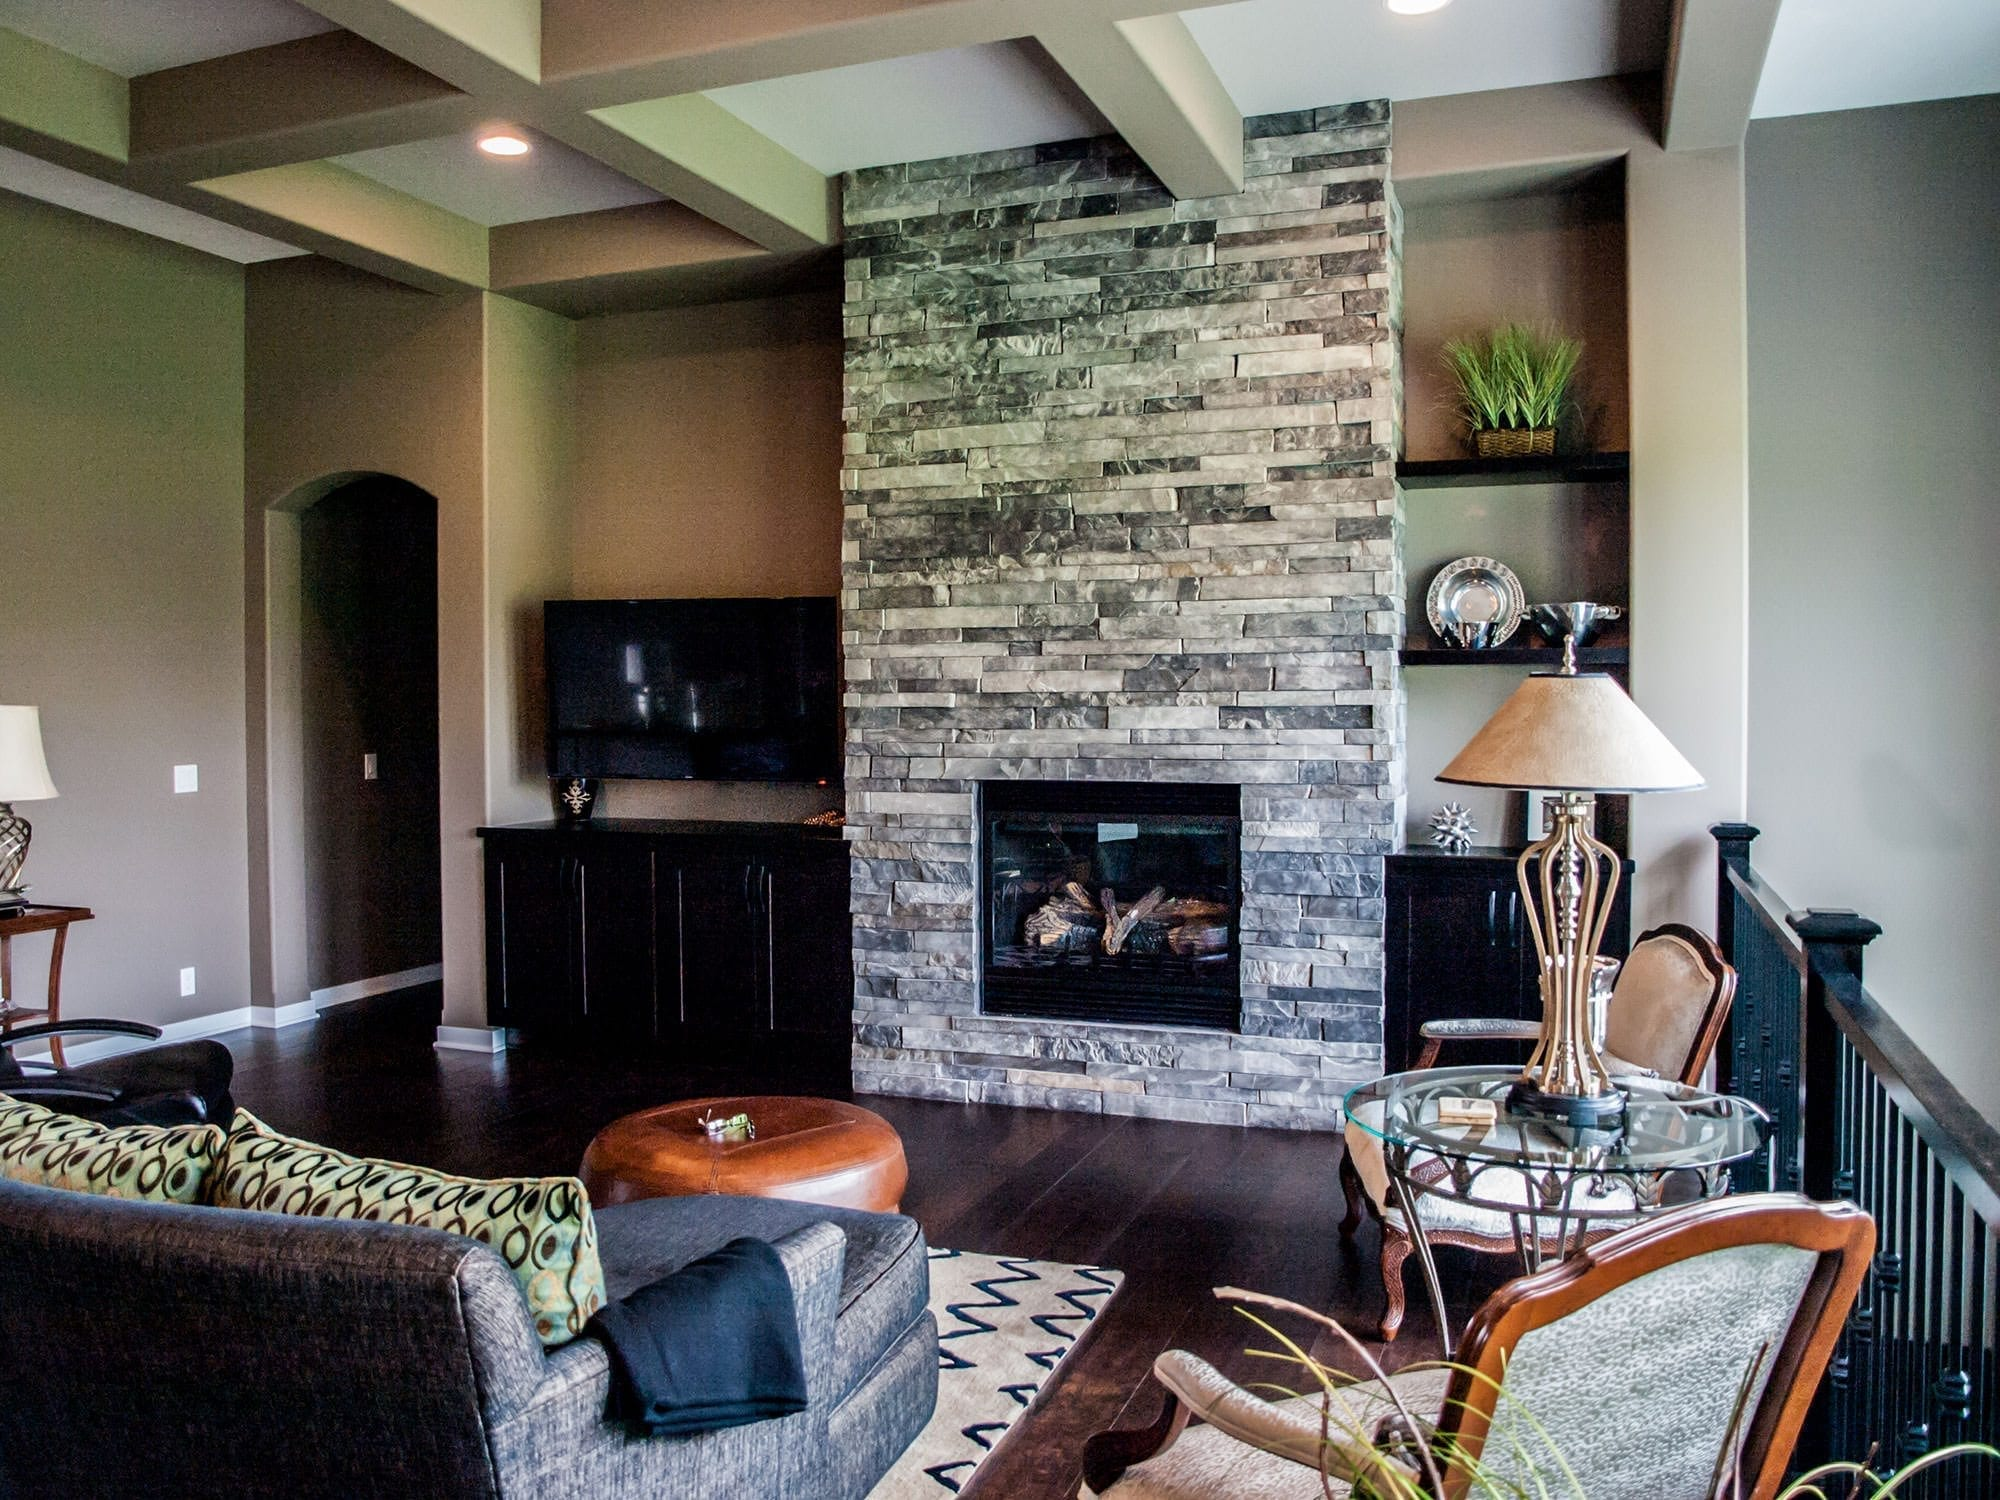 Natural Stone Might Be The Perfect Fall Decorating Project in Nebraska - Natural Stone Products in the Omaha and Lincoln, Nebraska Area